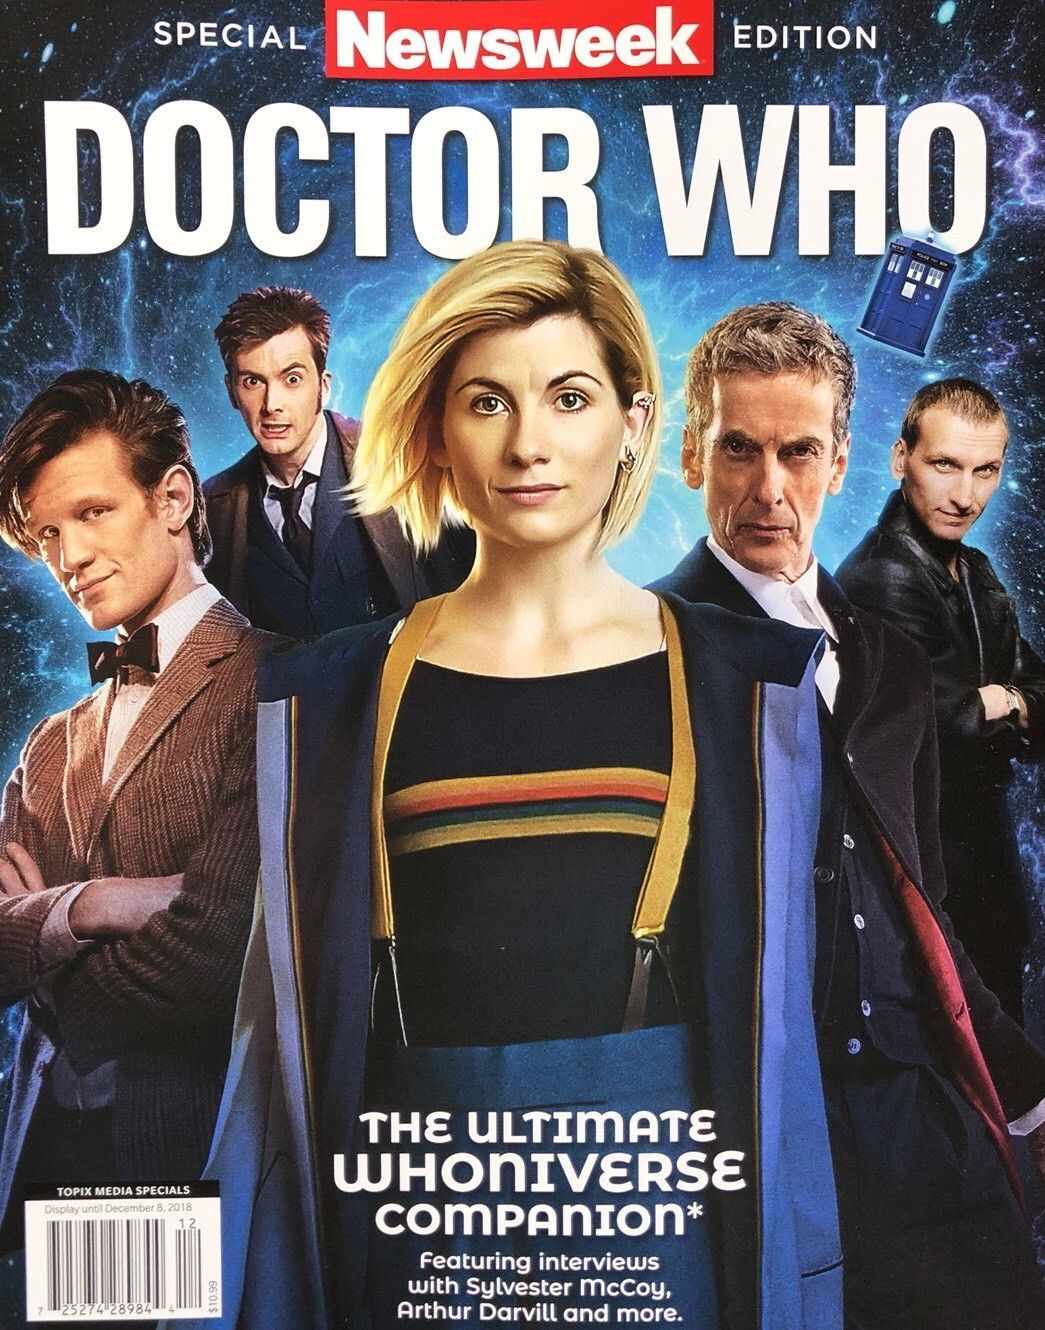 Newsweek Special Edition: Doctor Who: The Ultimate Whoniverse Companion